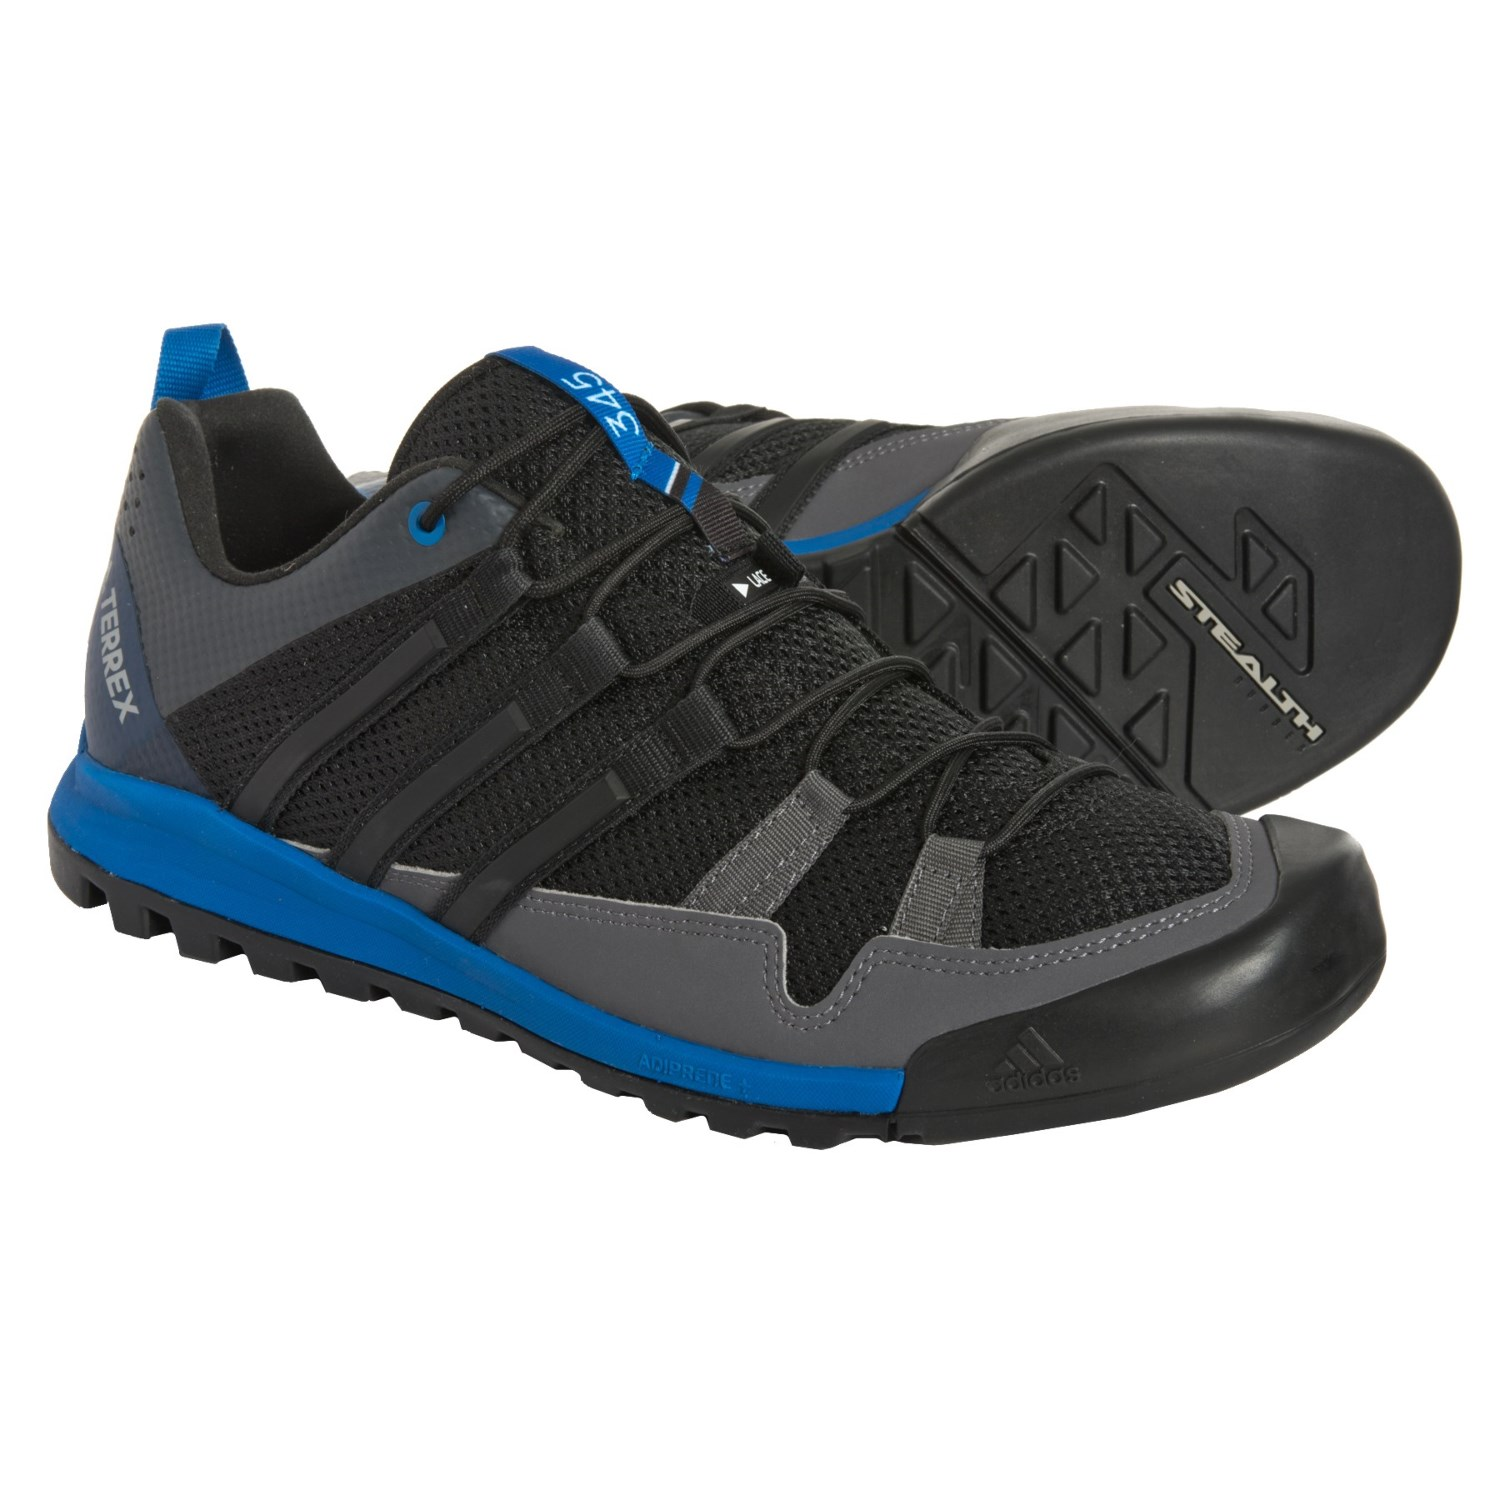 c08a5fac0ef28 adidas Terrex Solo Hiking Shoes (For Men) in Black Black Blue Beauty .